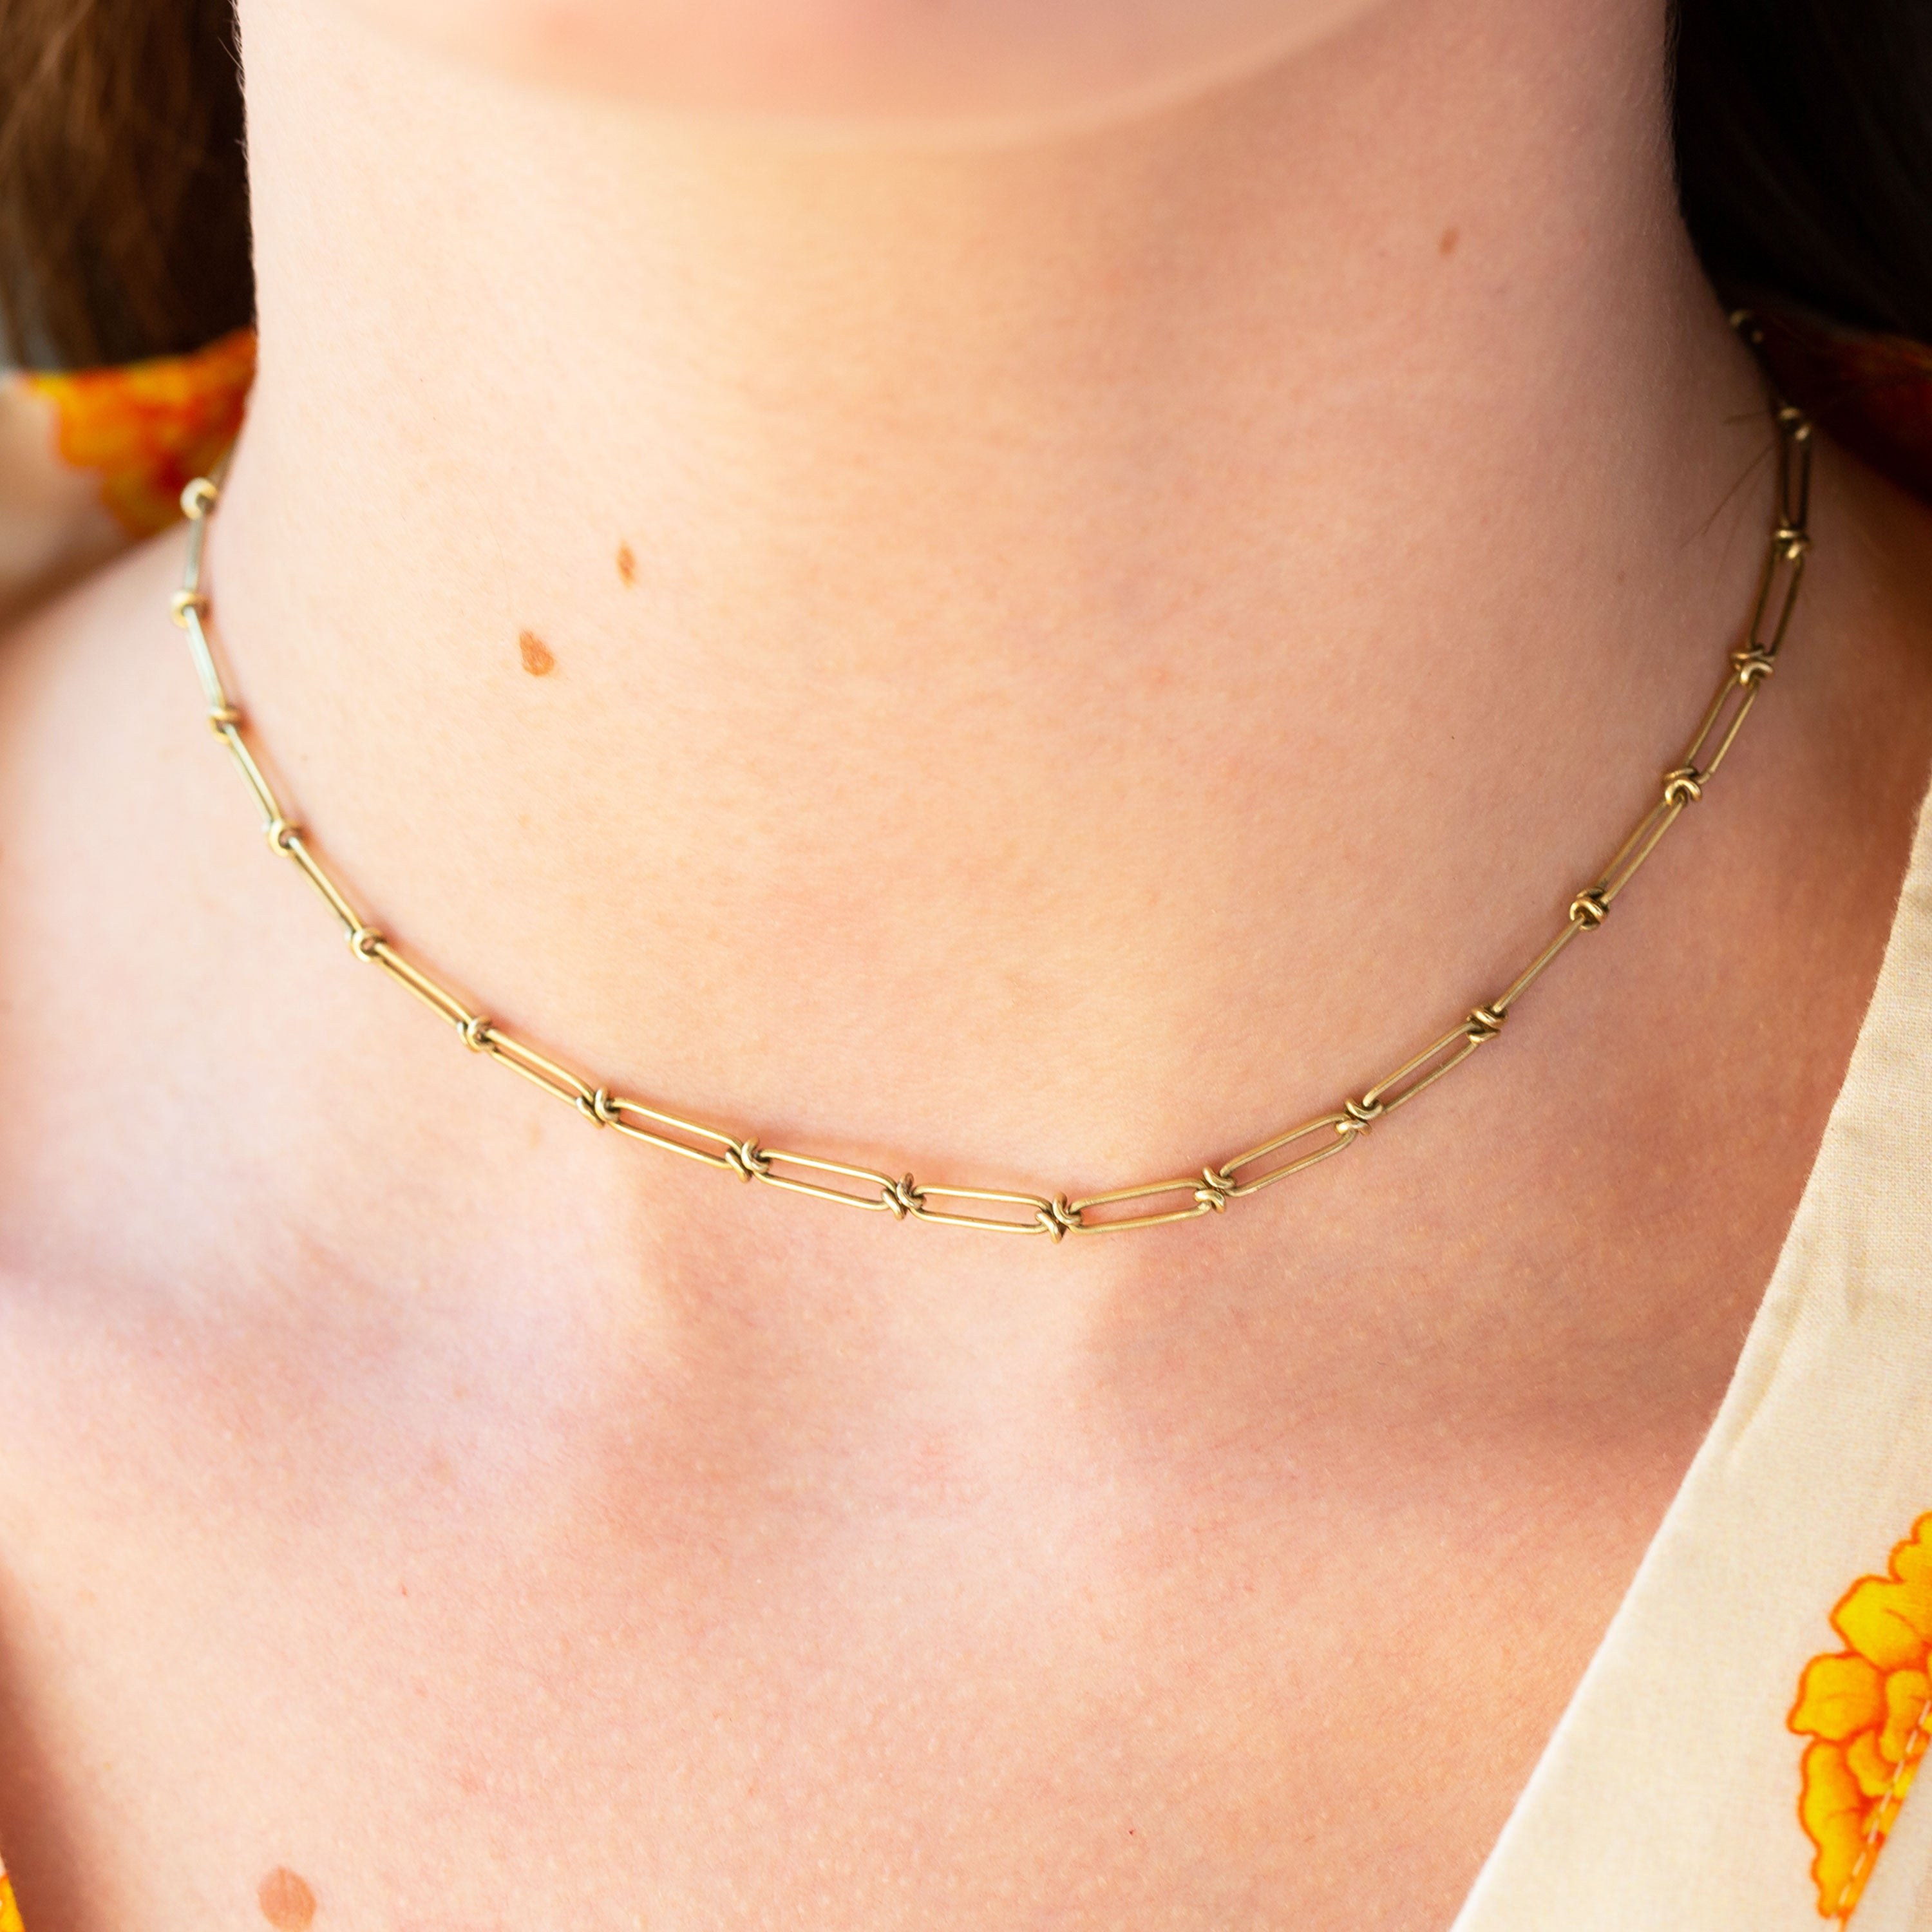 Victorian Choker 14k Gold Chain Necklace